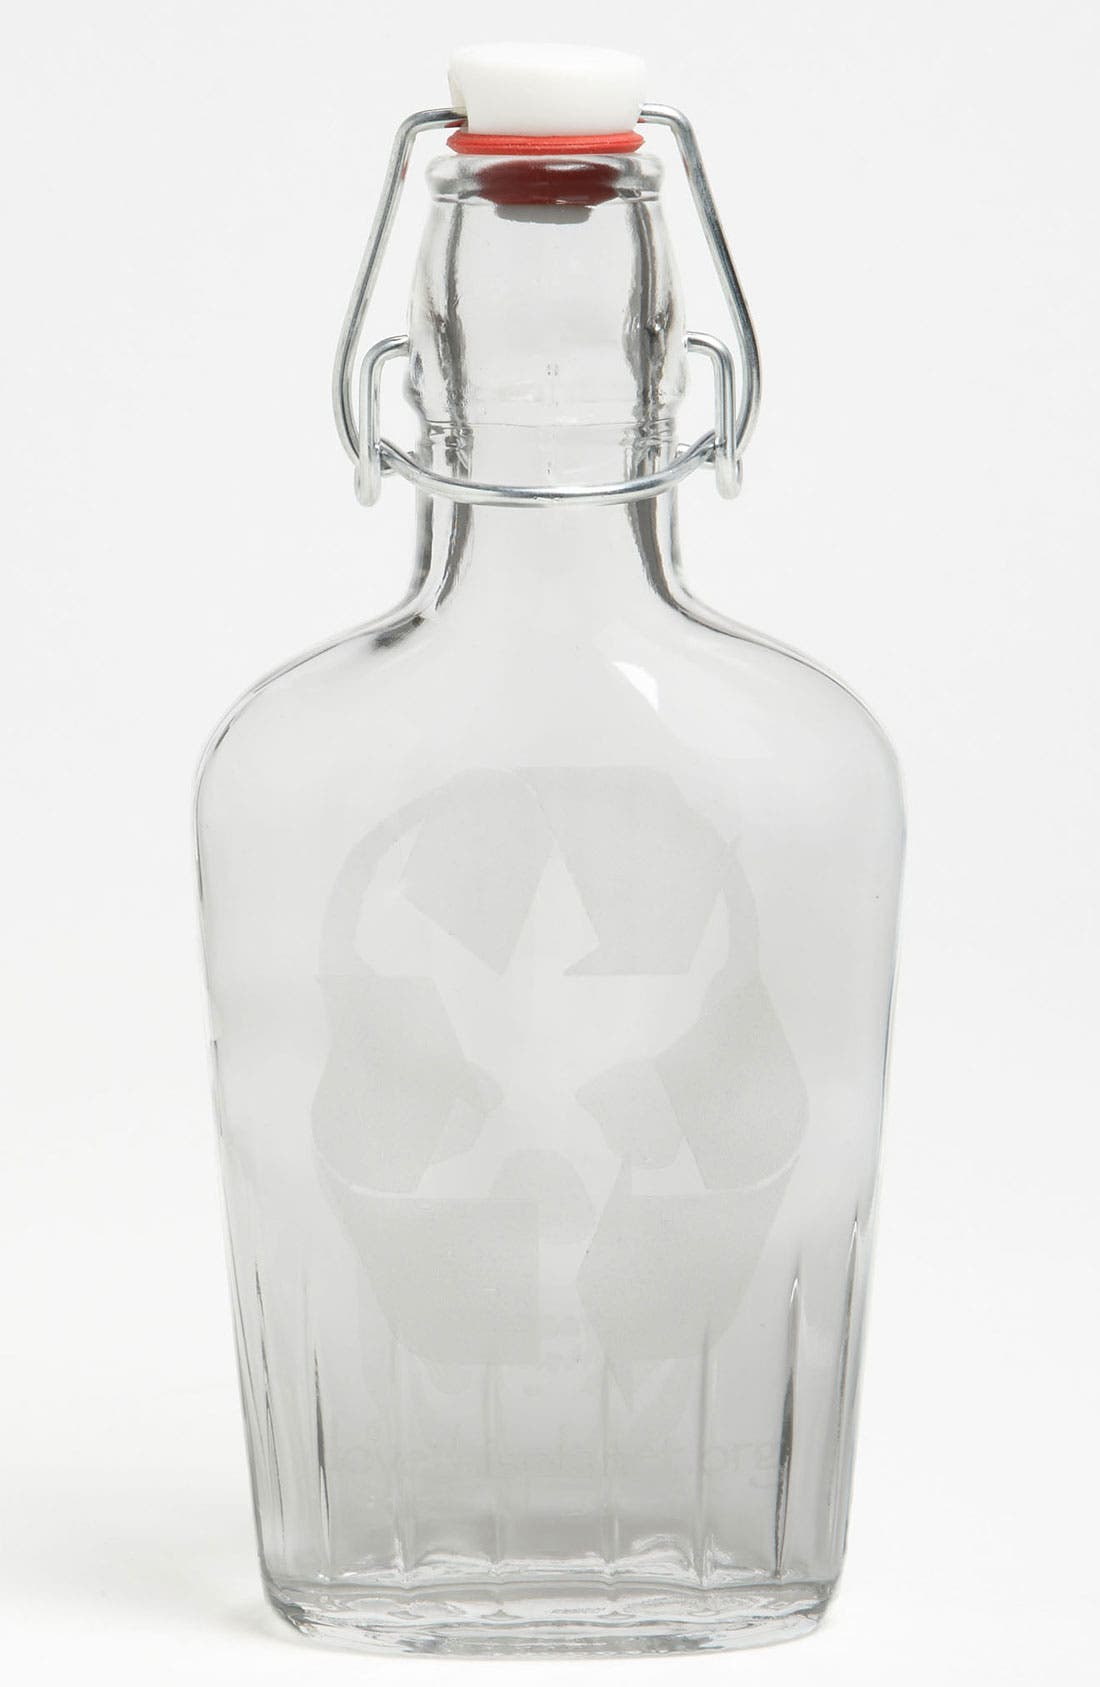 Main Image - Love This Planet 'Skull' Flask Water Bottle